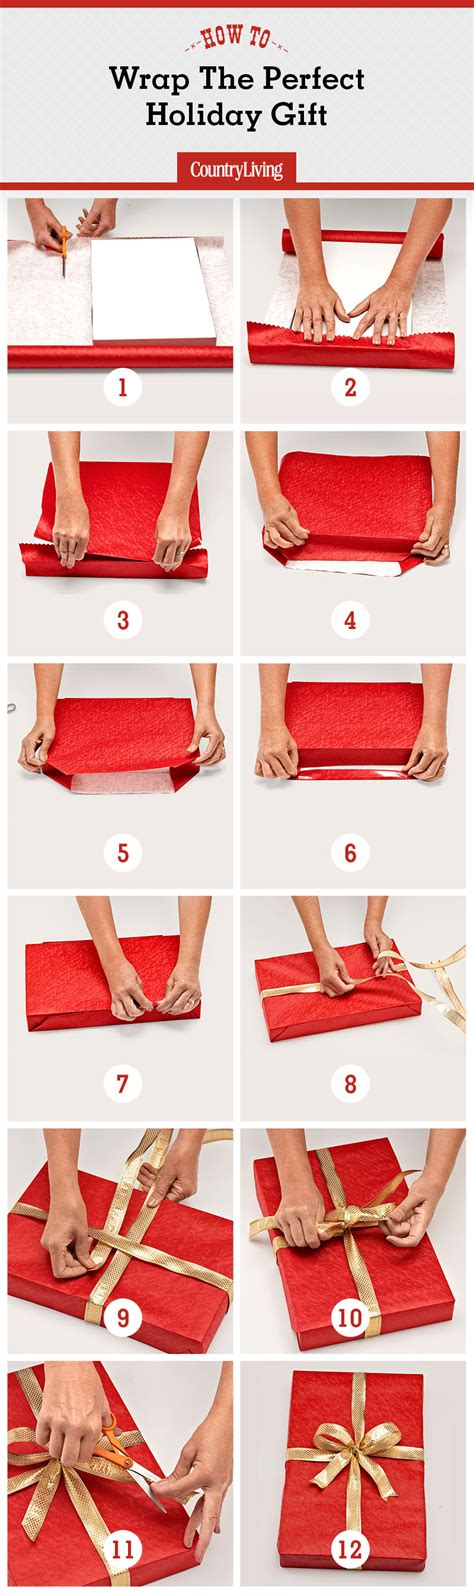 how to wrap christmas presents how to wrap a gift wrapping a present step by step instructions with pictures